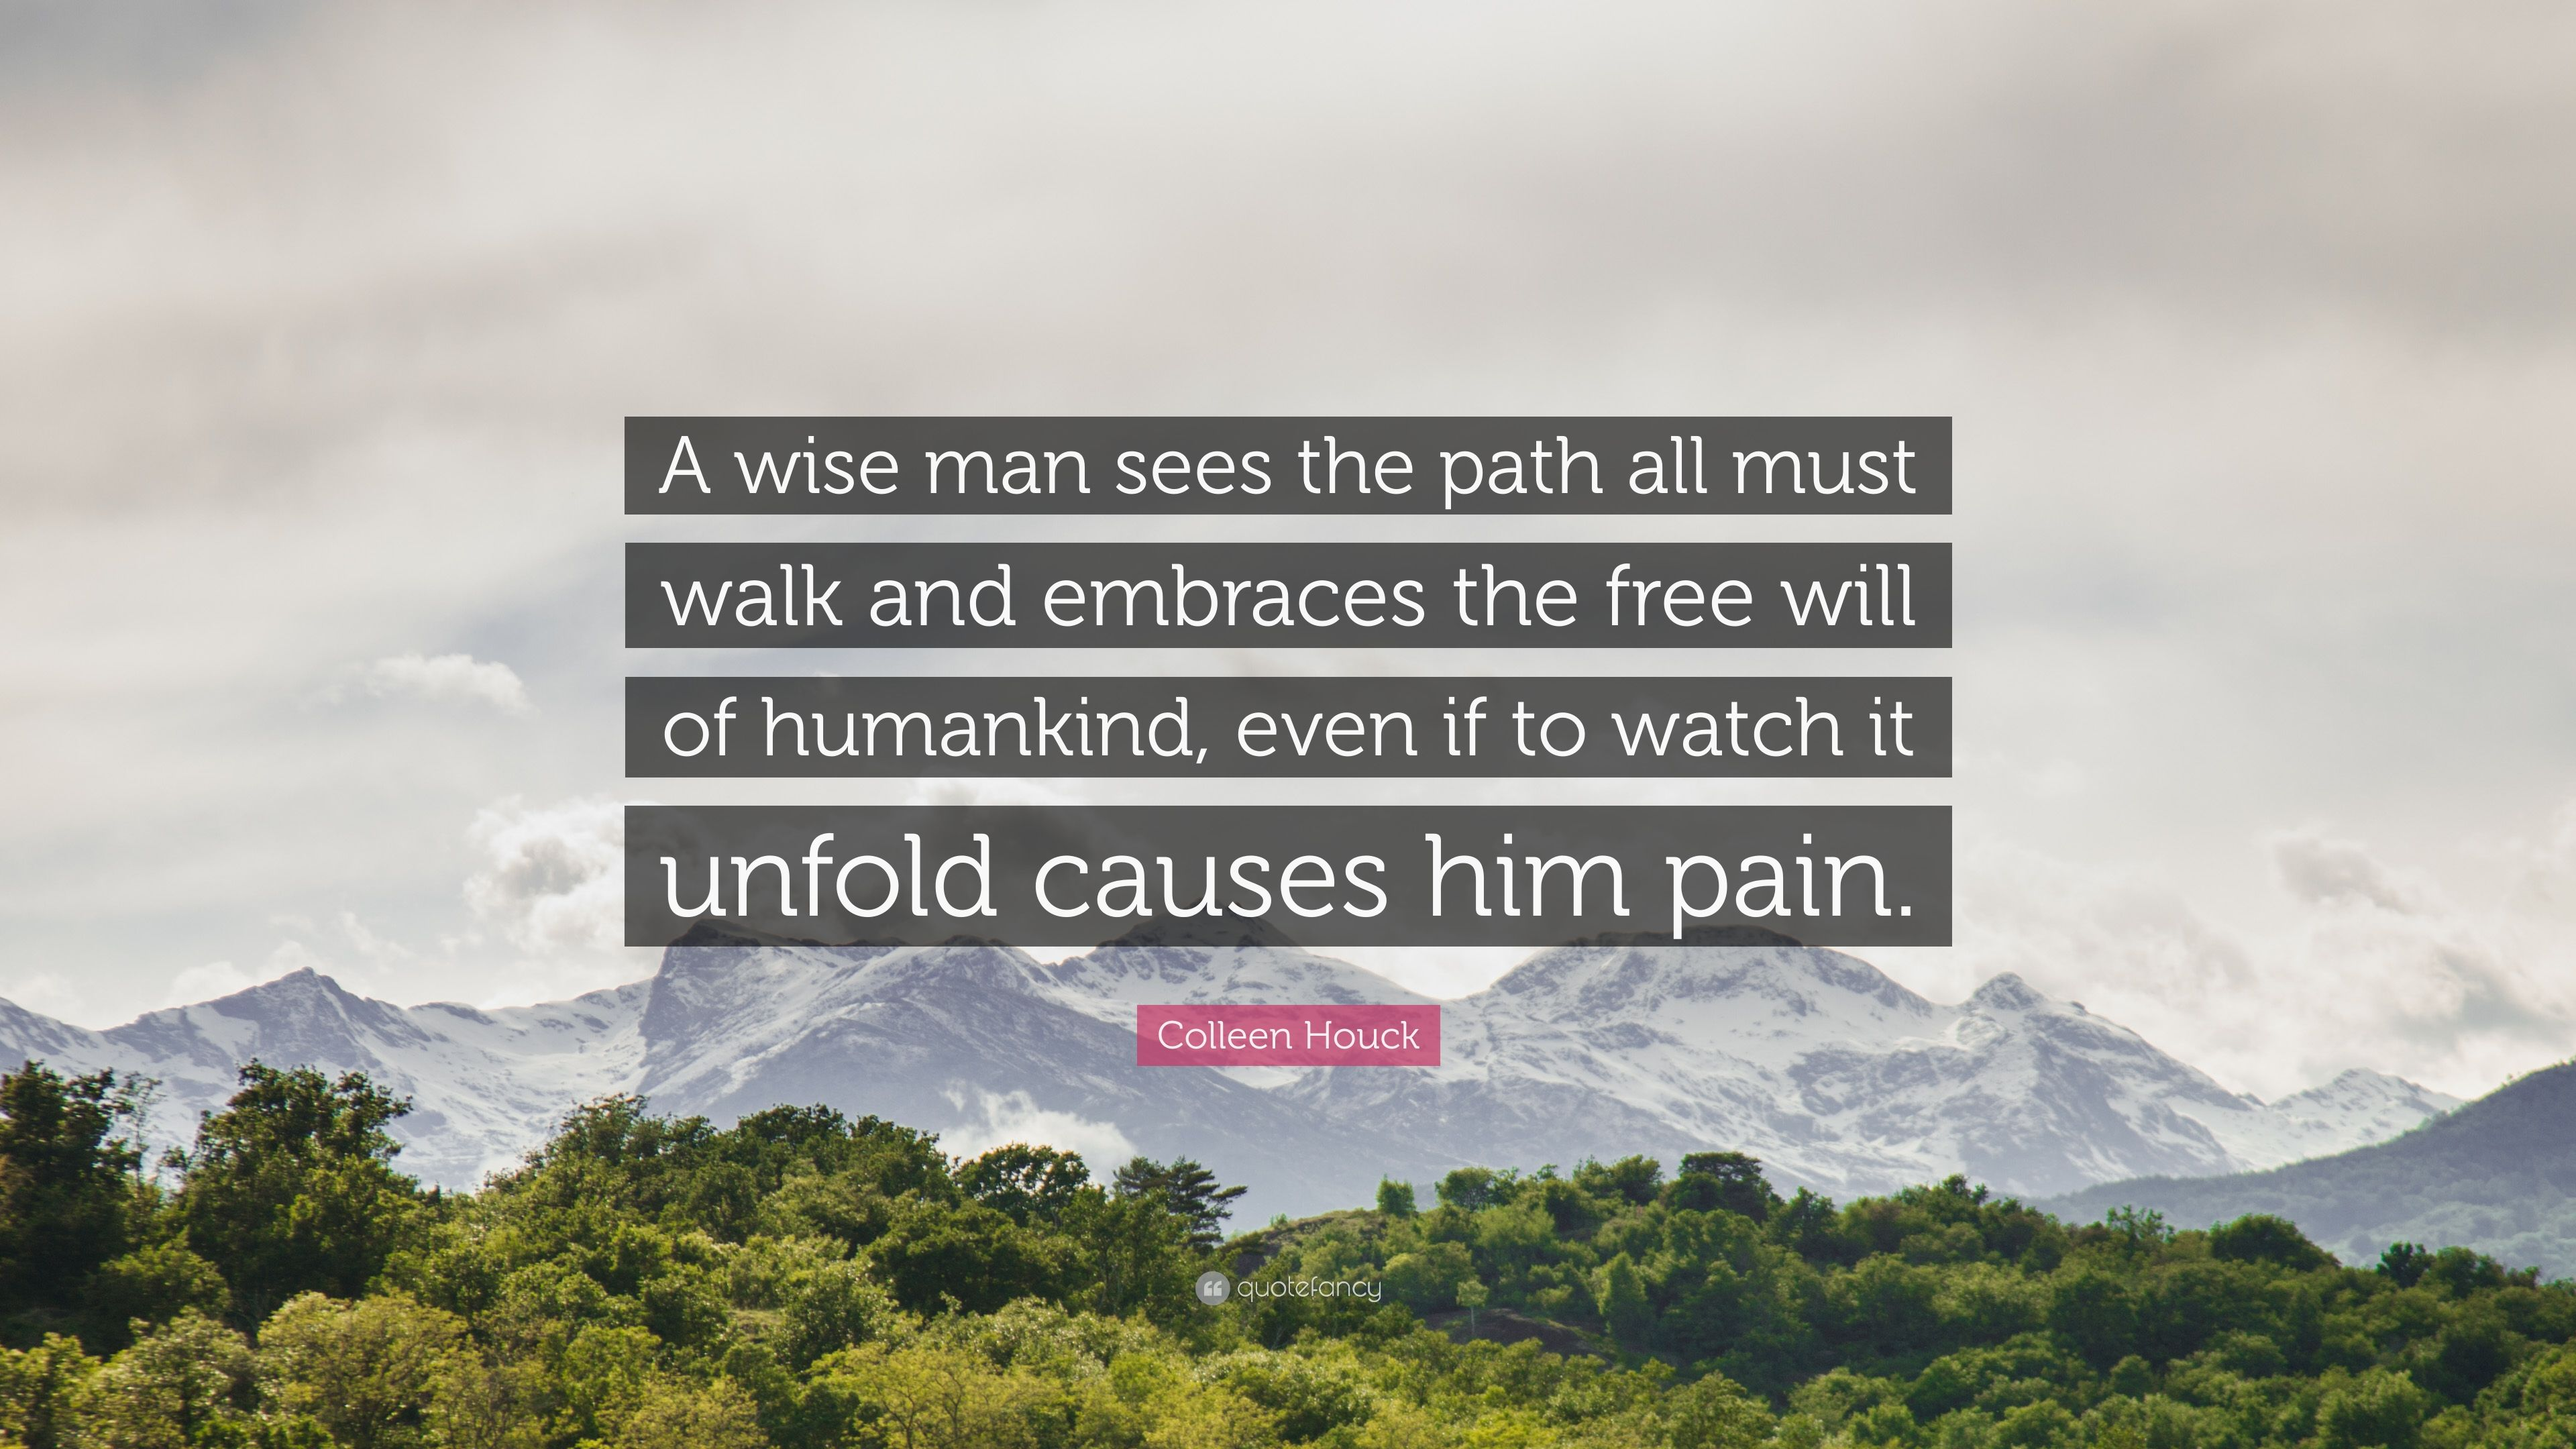 Delicieux Colleen Houck Quote: U201cA Wise Man Sees The Path All Must Walk And Embraces